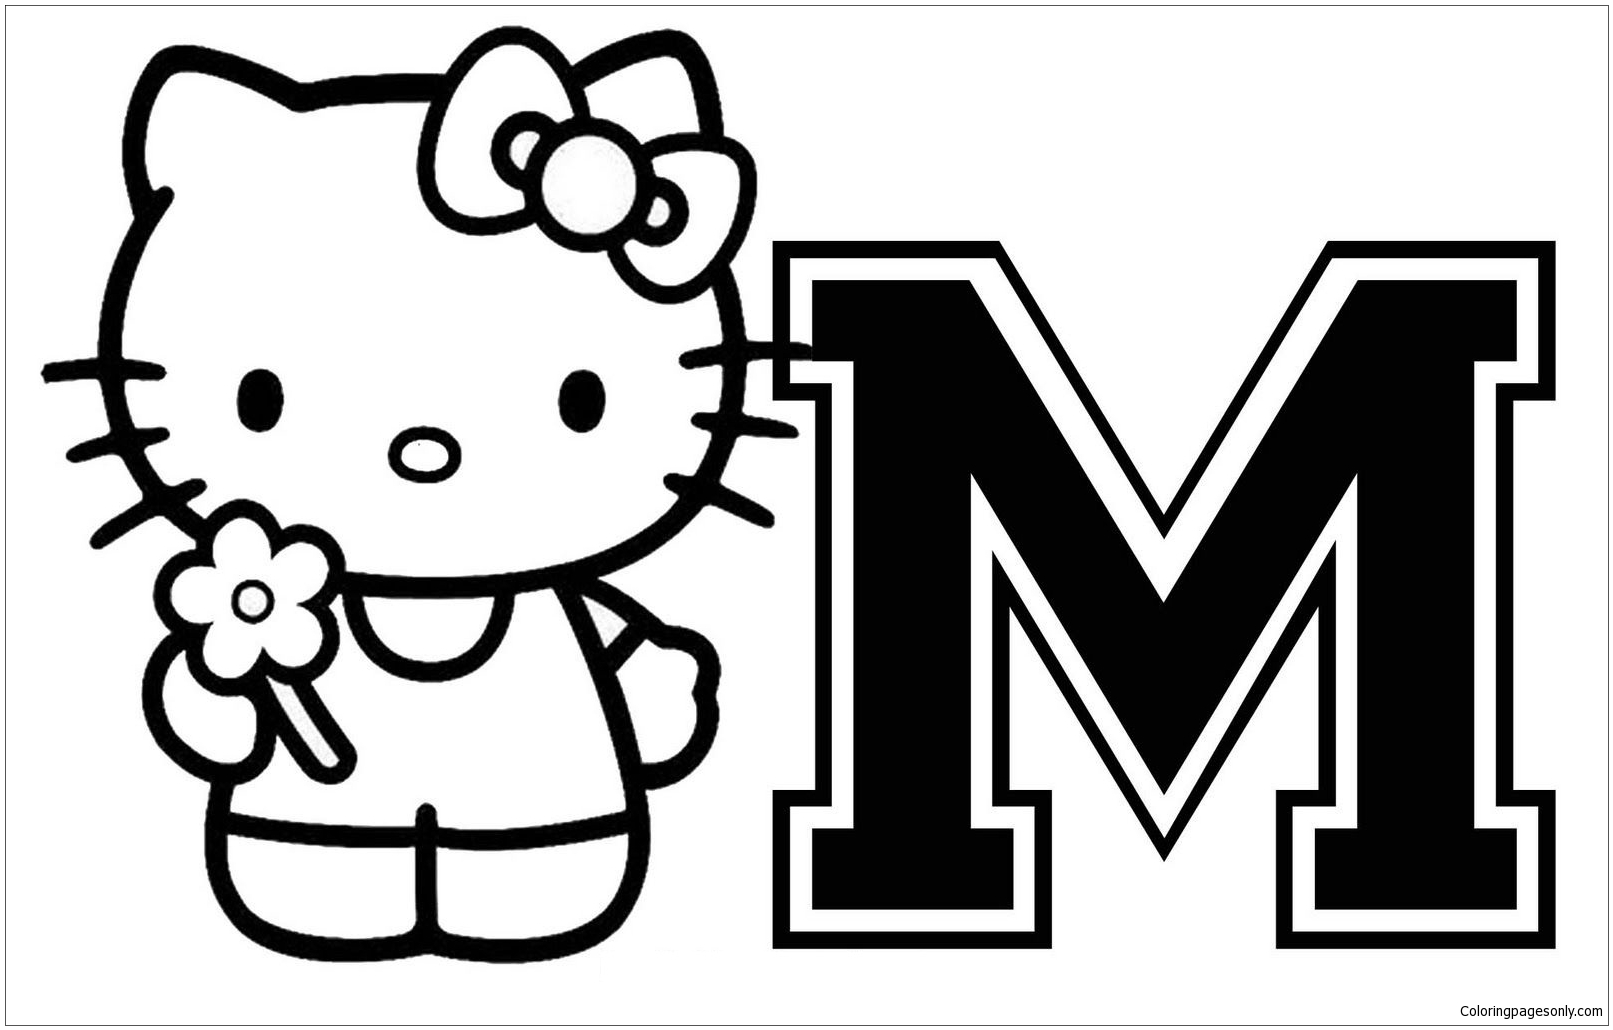 Hello Kitty With Letter M Coloring Page - Free Coloring Pages Online